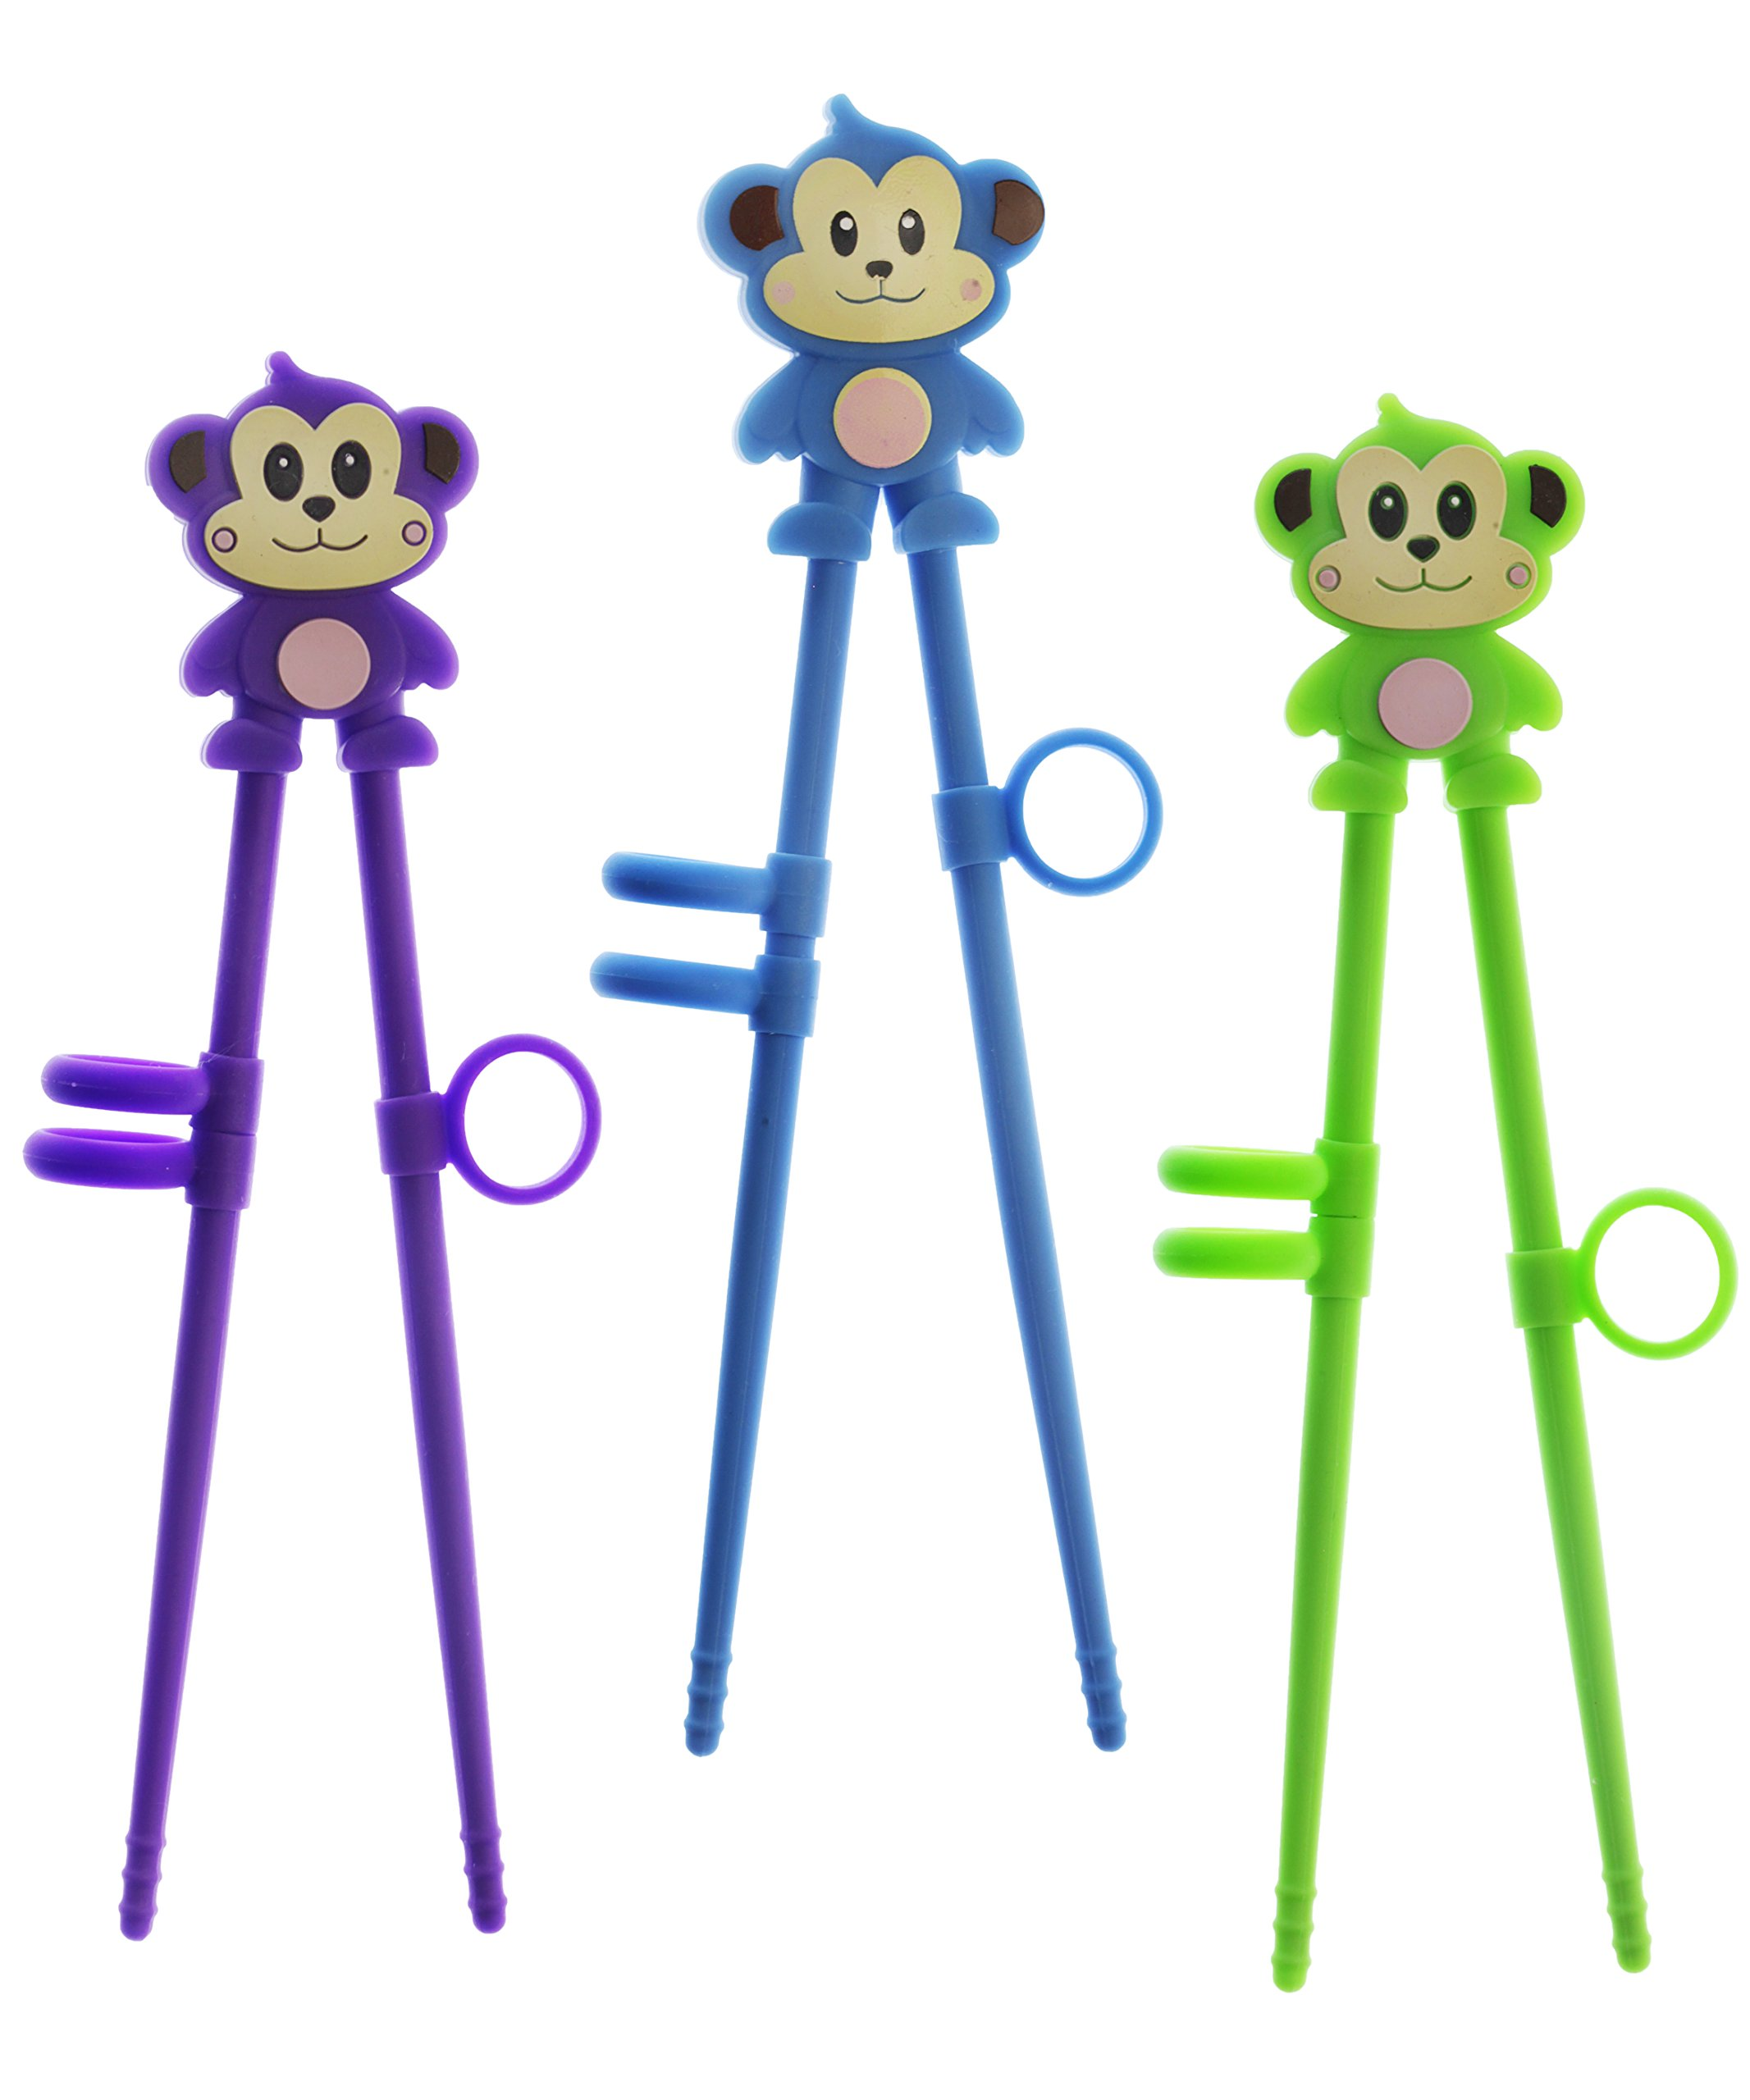 Kids Monkey Chopsticks - Training Chopsticks for Beginners, Kids, Teens or Adults - set of 3 Animal Silicone Blue, Green, Purple